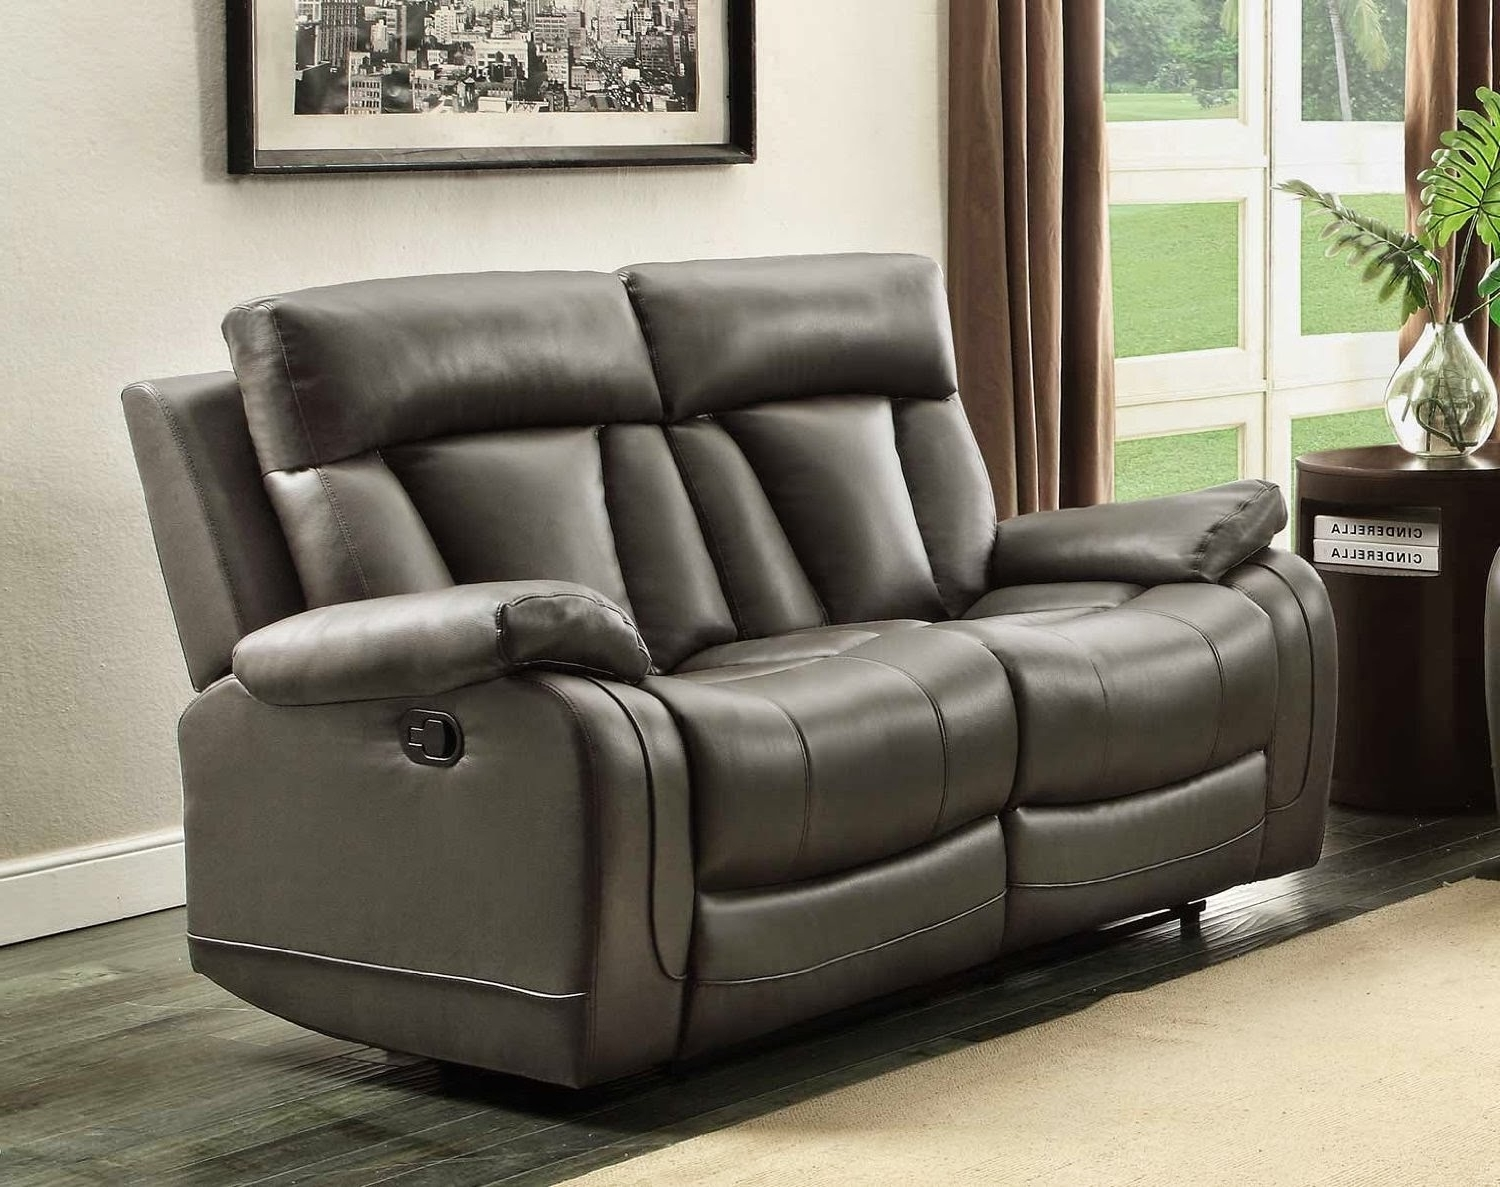 modena 2 seater reclining leather sofa what was a bed 15 photos recliner sofas newest inside best for the money vivaldi